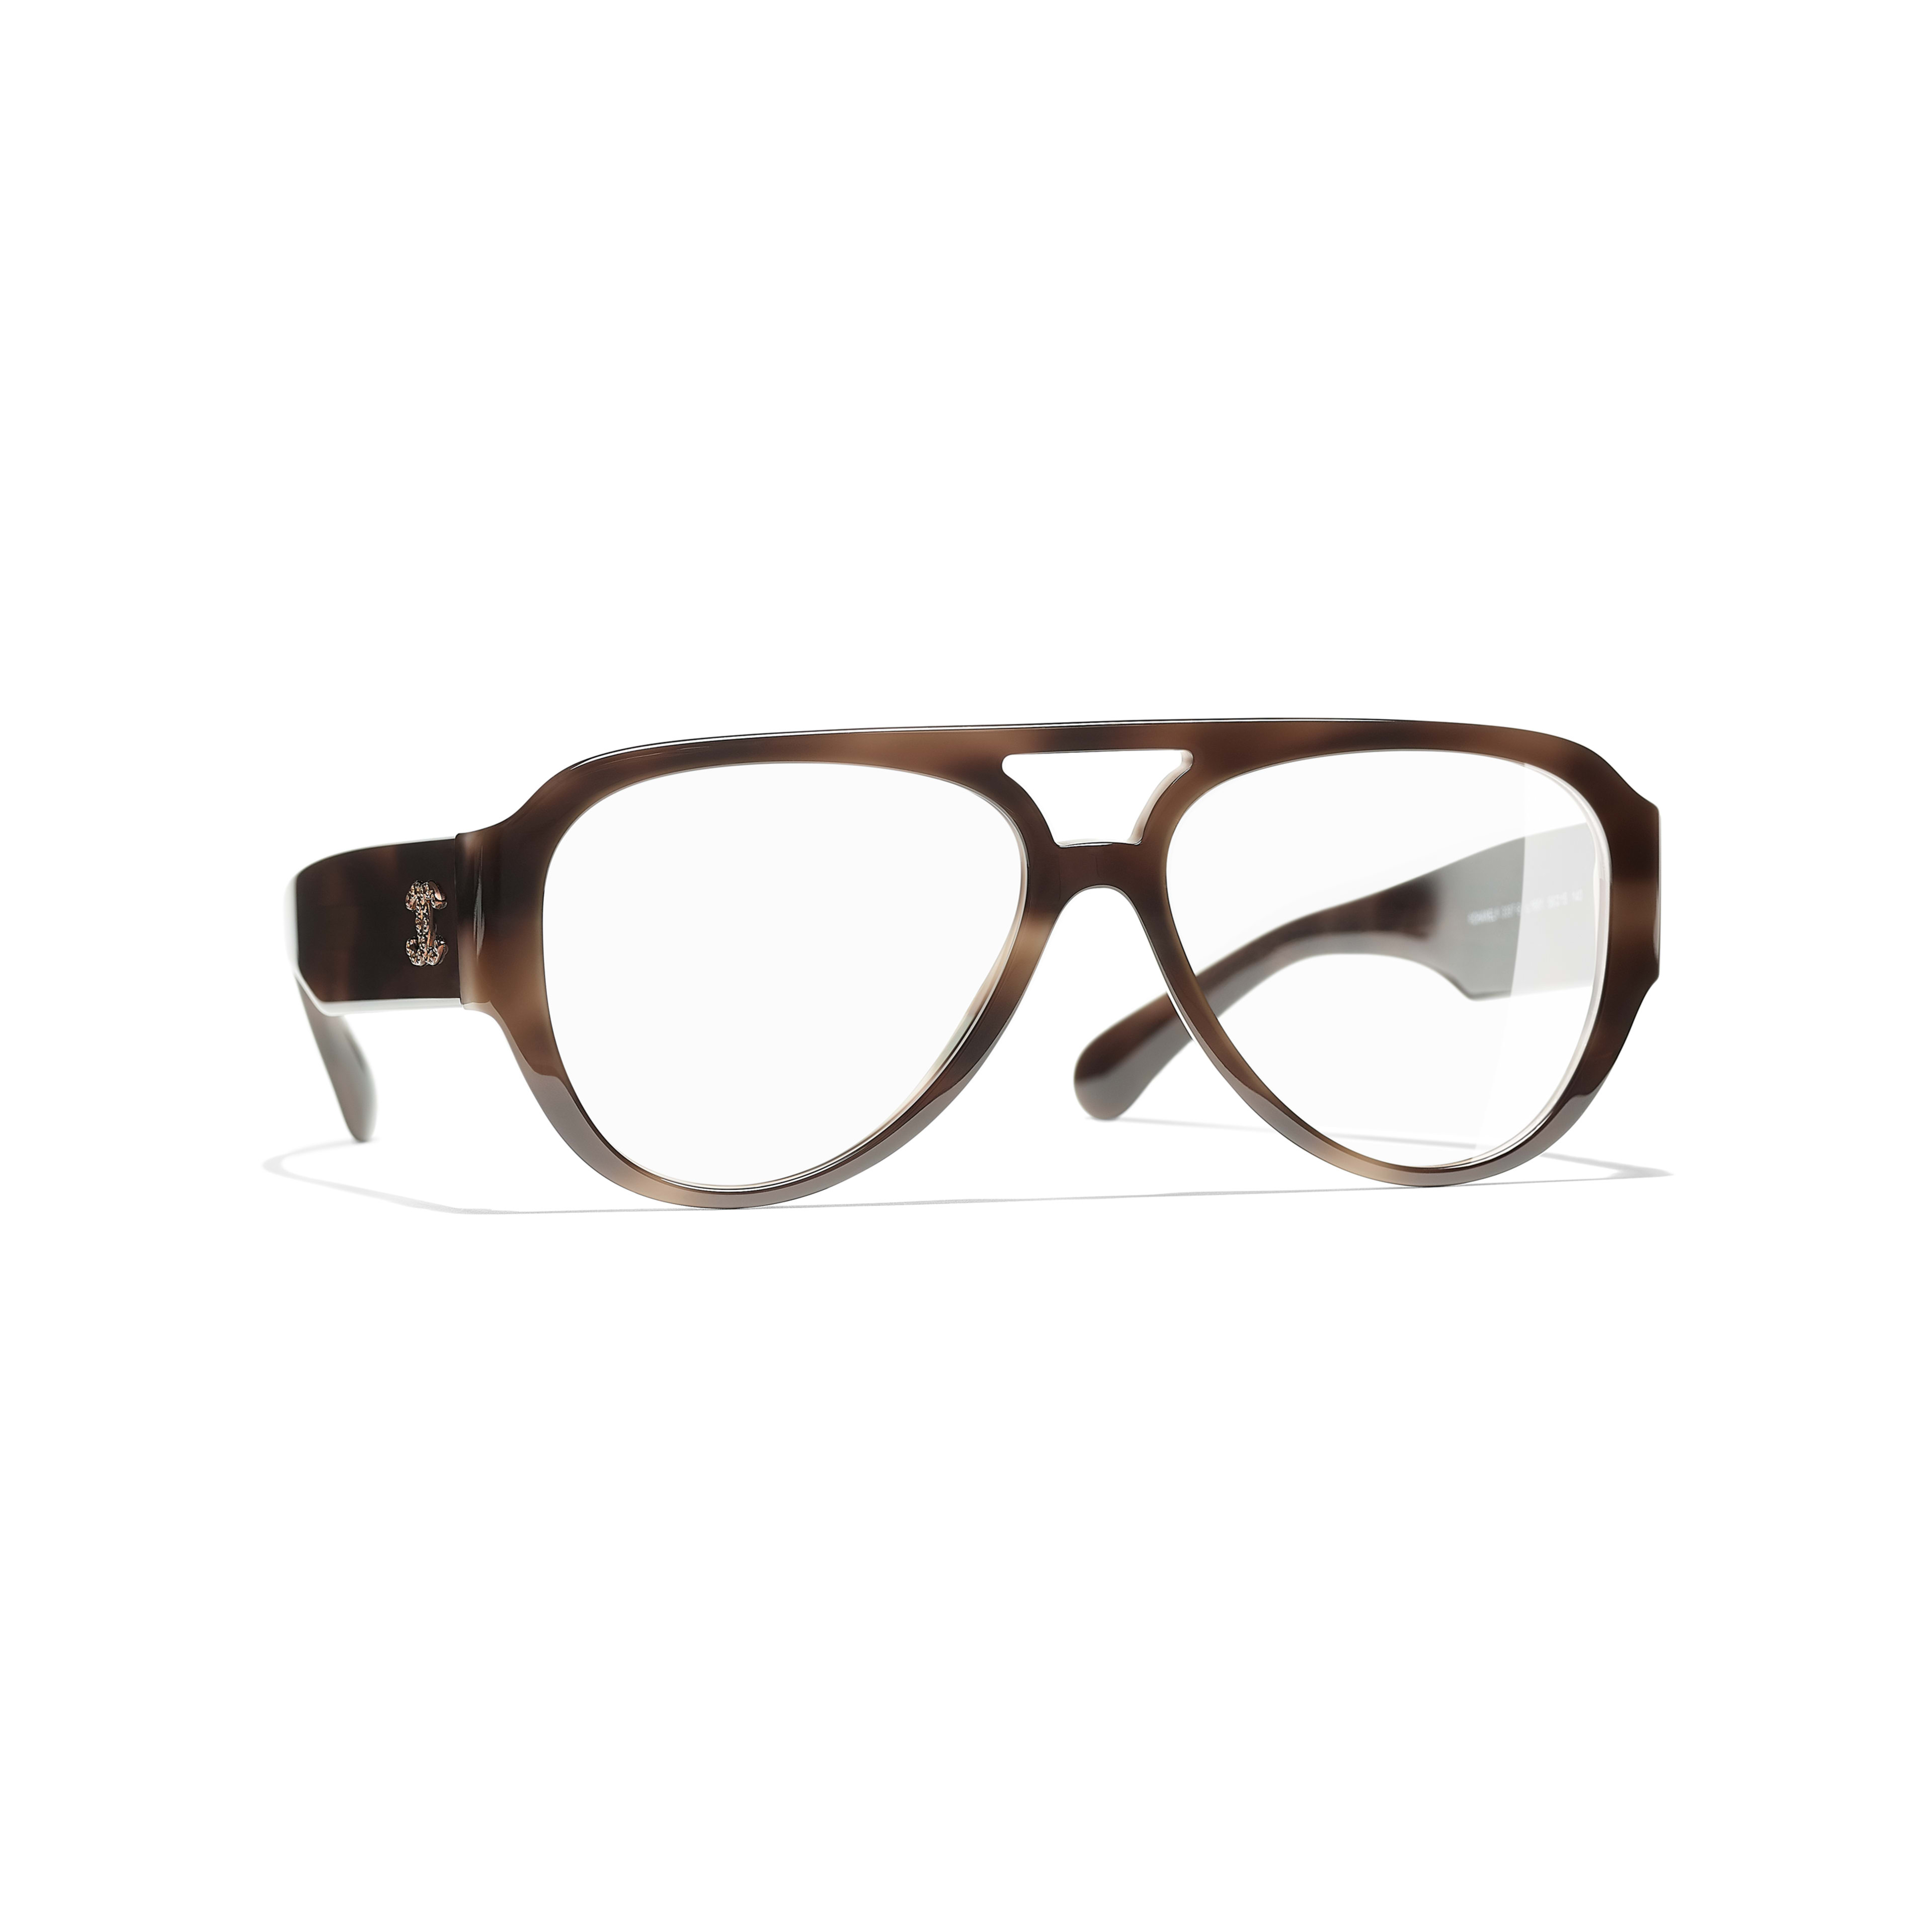 Pilot Eyeglasses - Brown - Acetate & Diamanté - Default view - see standard sized version